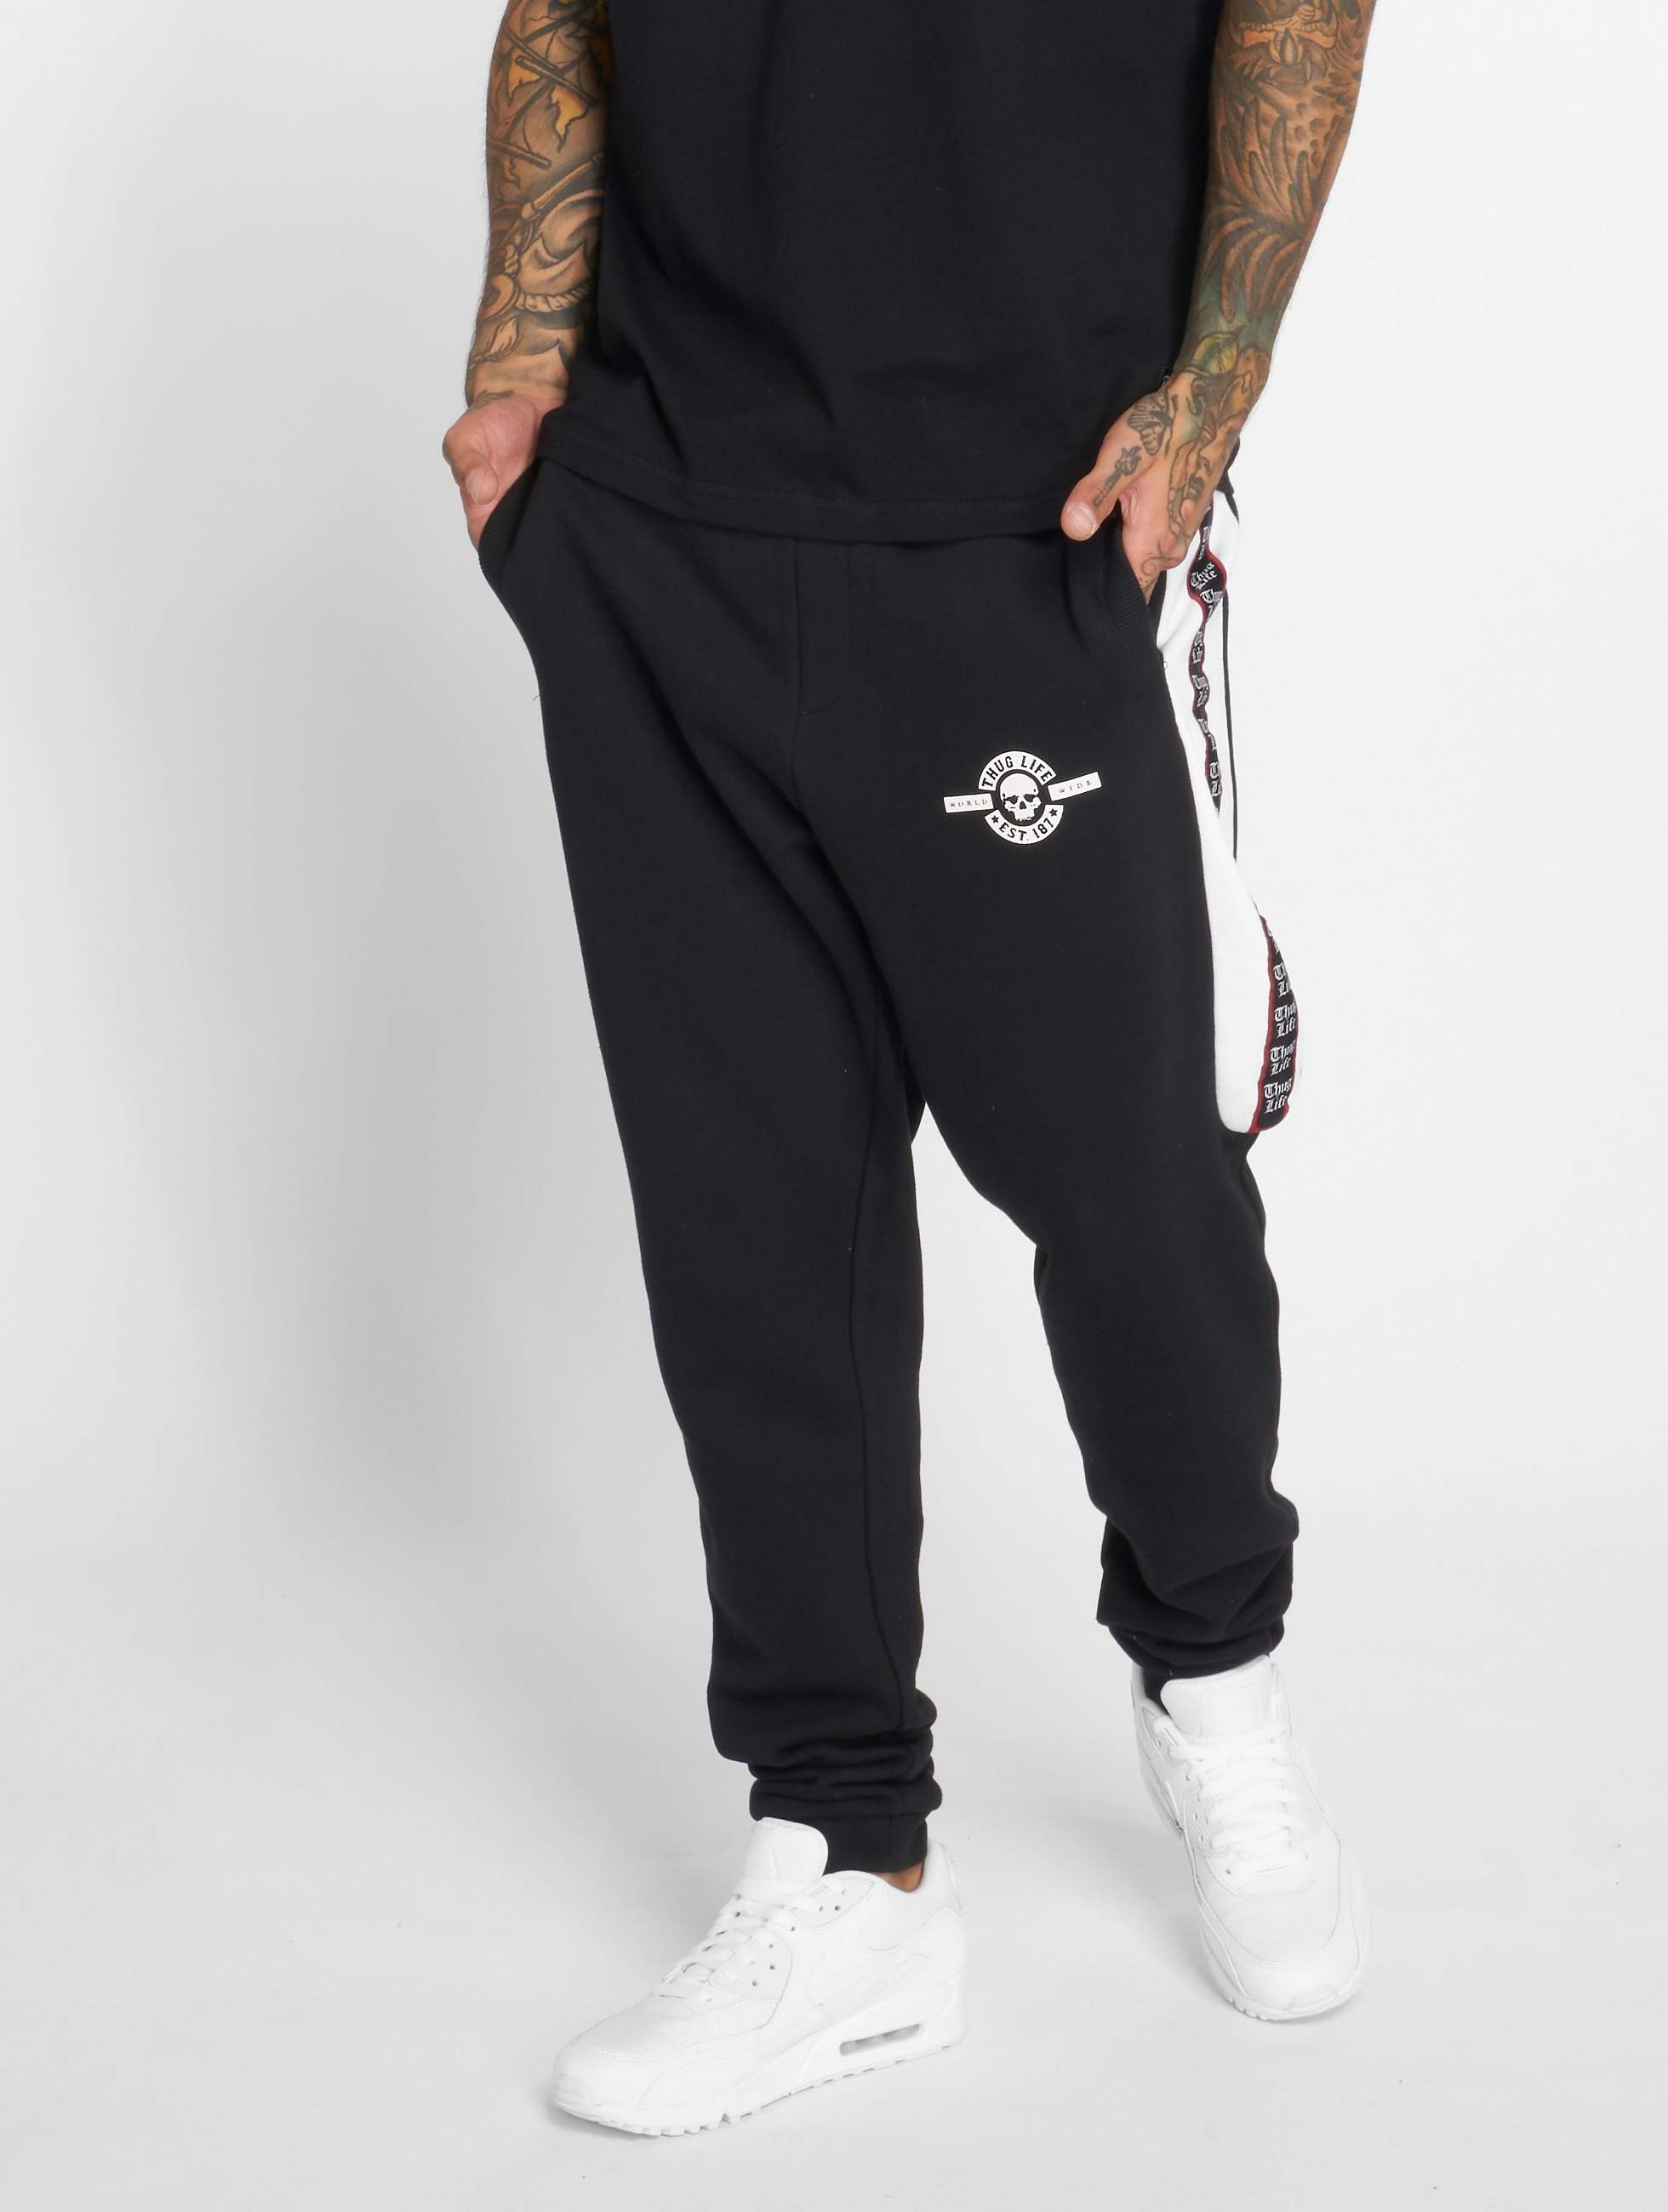 Thug Life / Sweat Pant Python in black XL